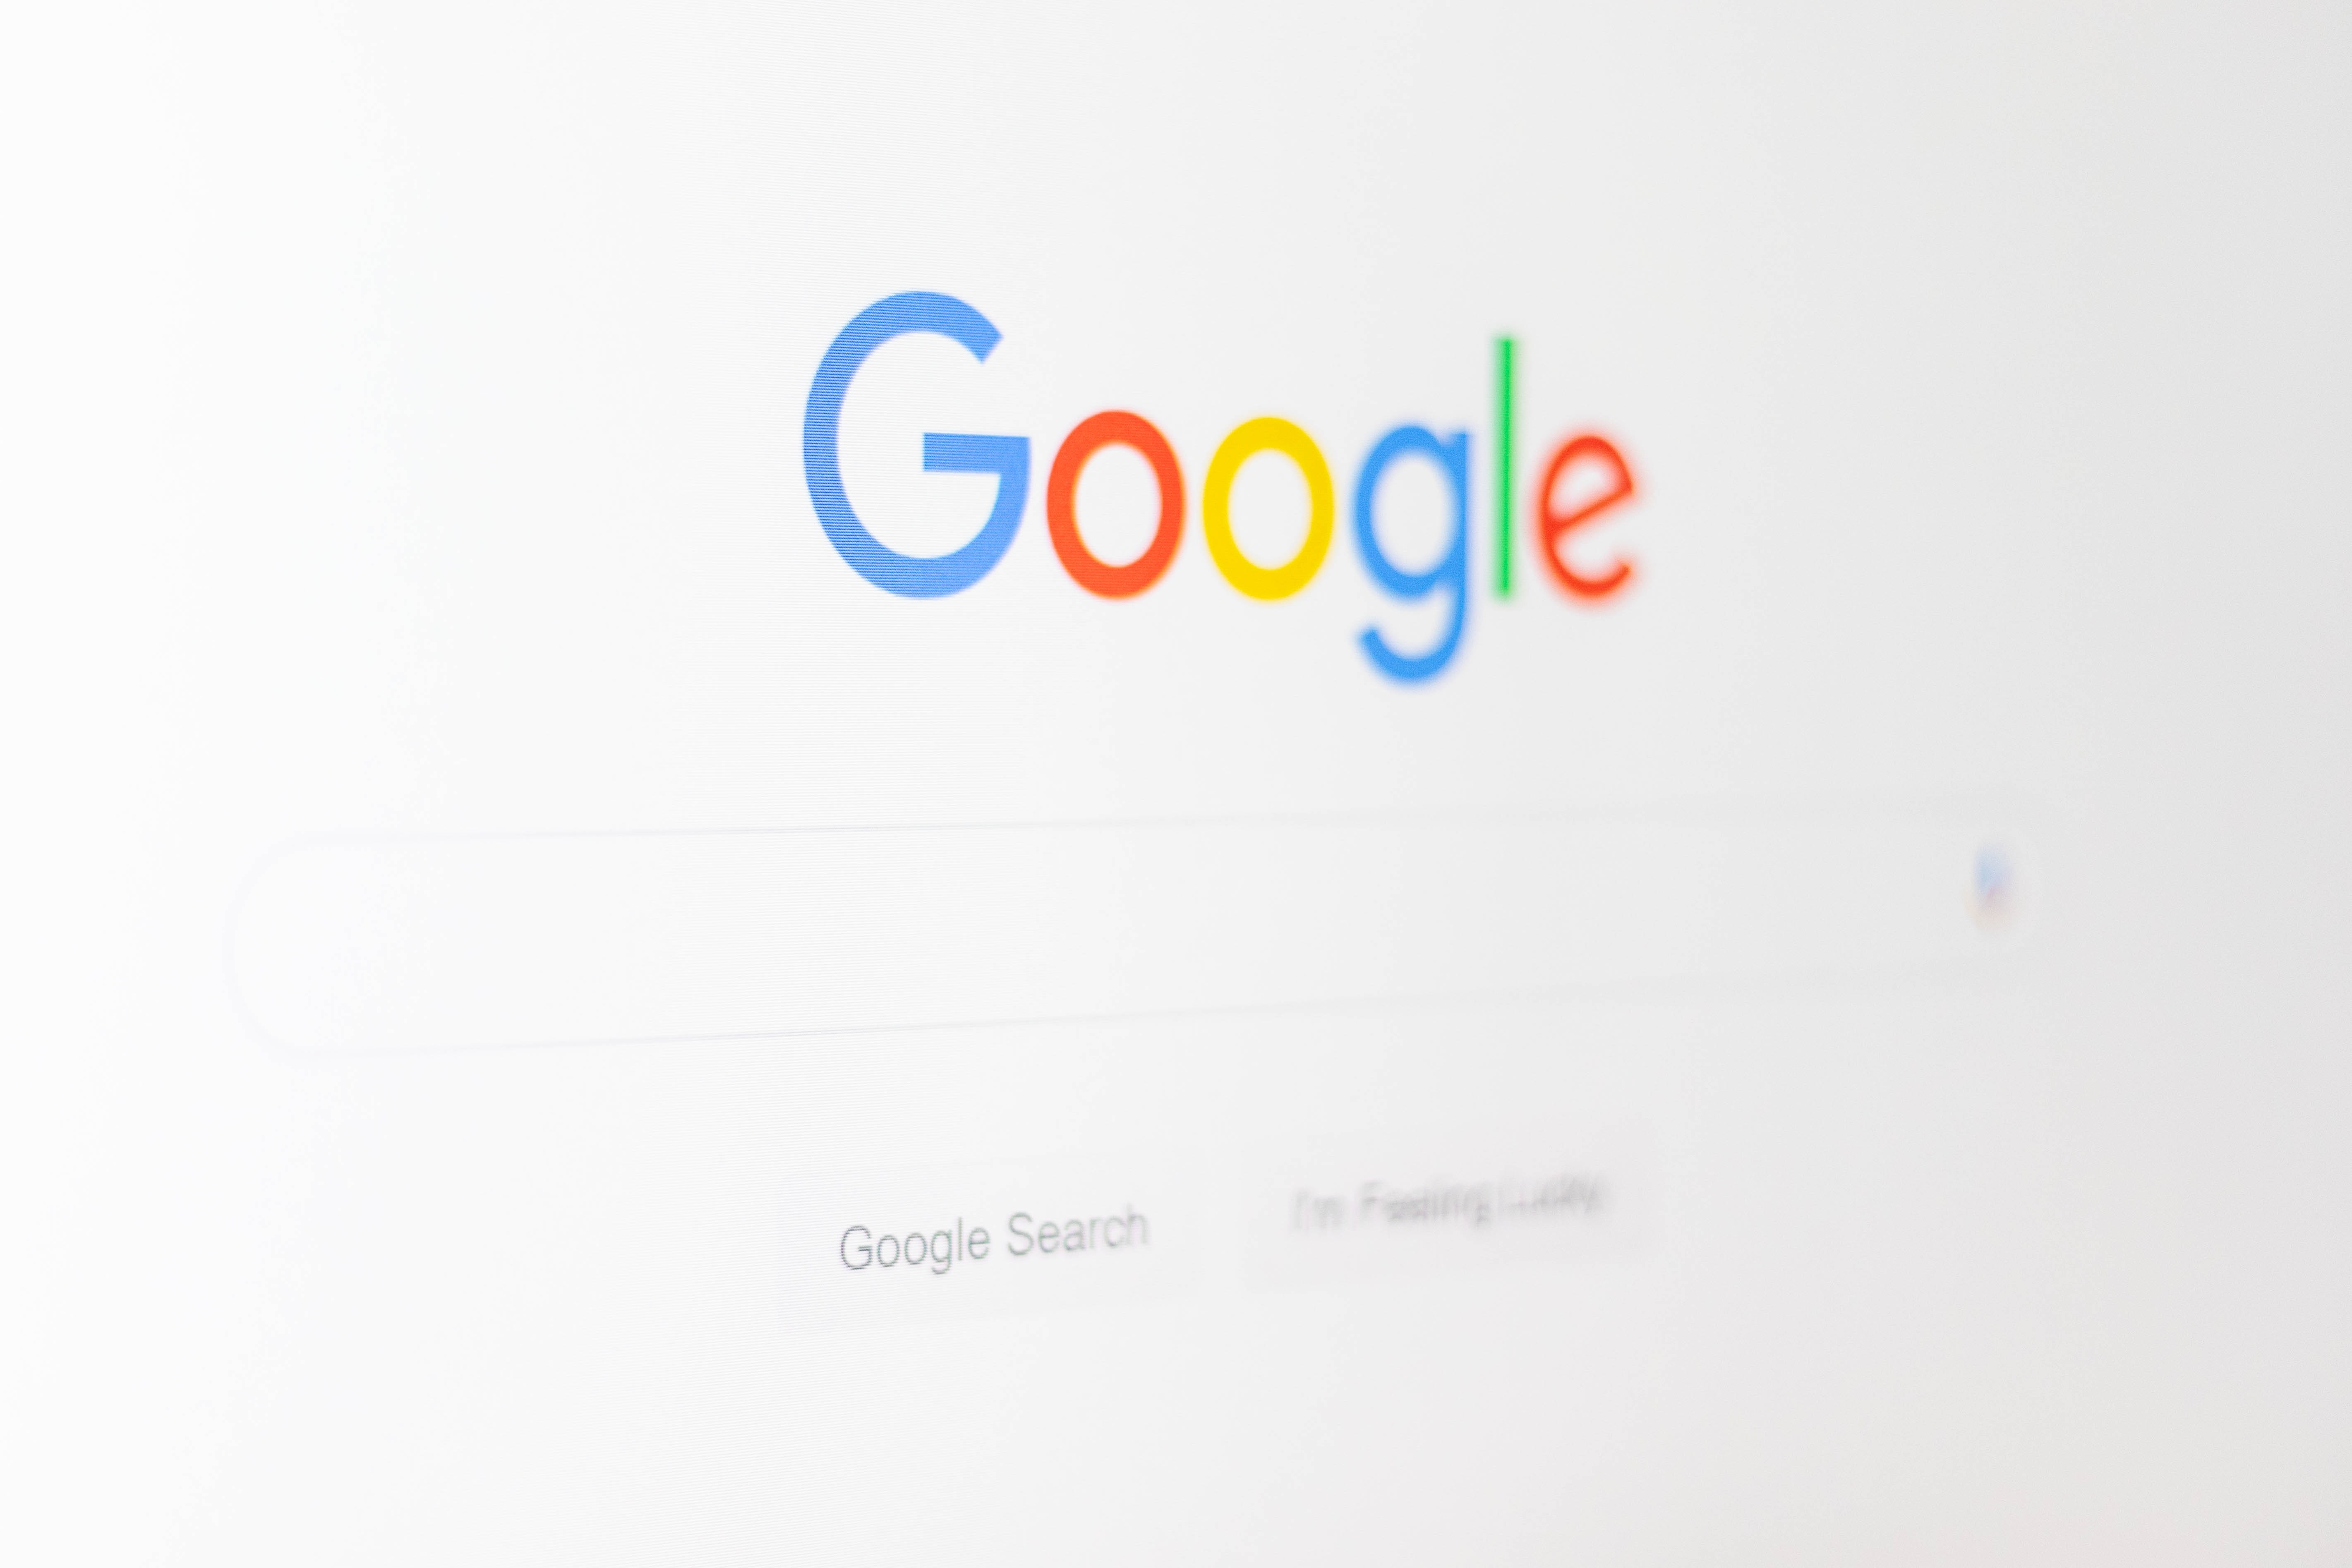 Google: conduct keyword research for your content marketing